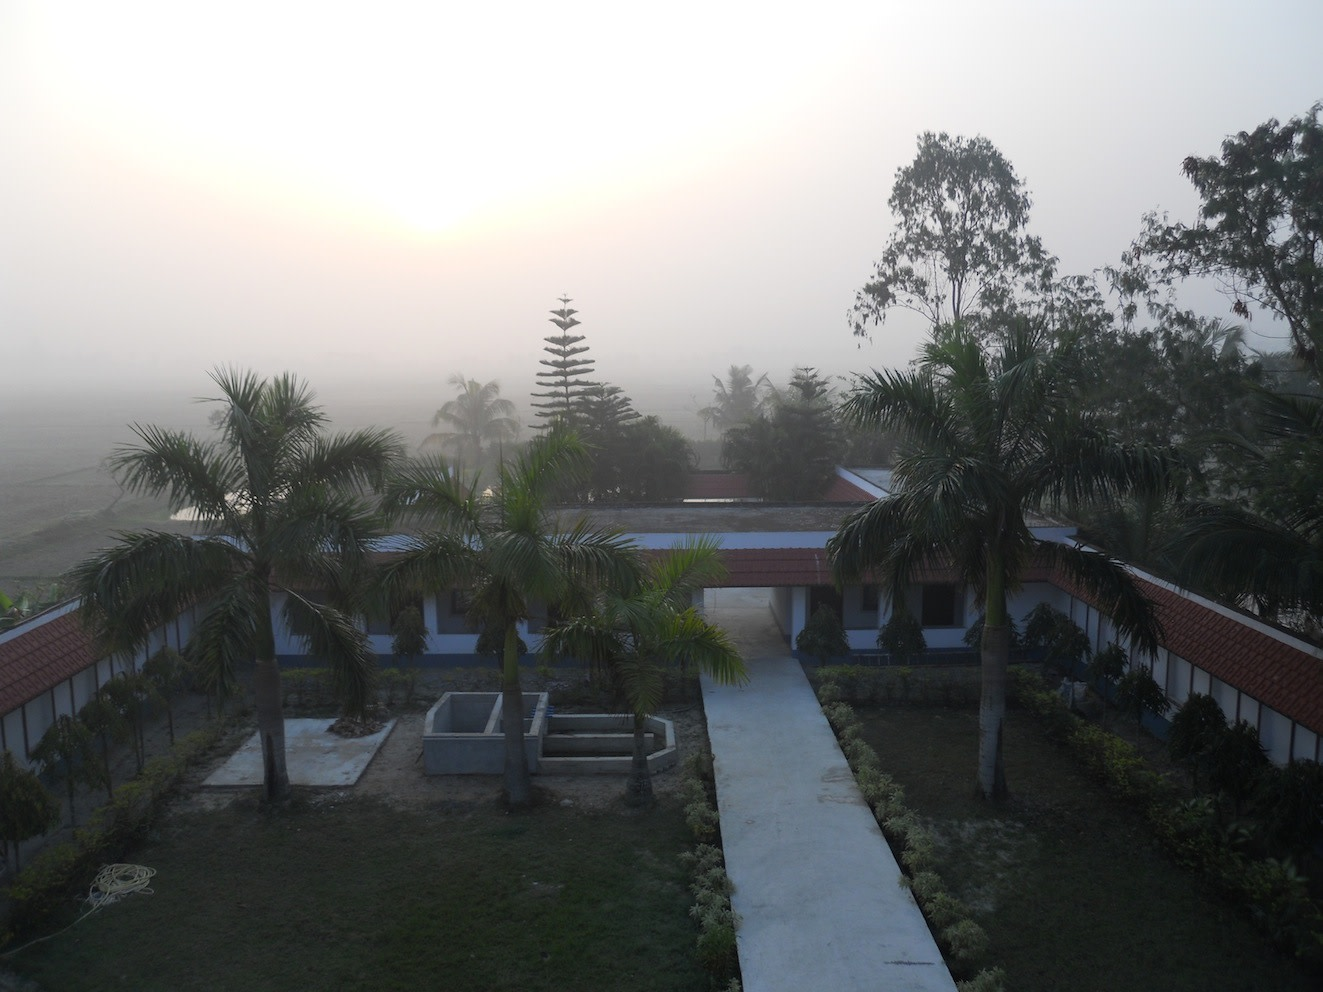 Lastly, my favourite picture: the VSSU guesthouse garden always being lit up by a simmering sunrise glow.